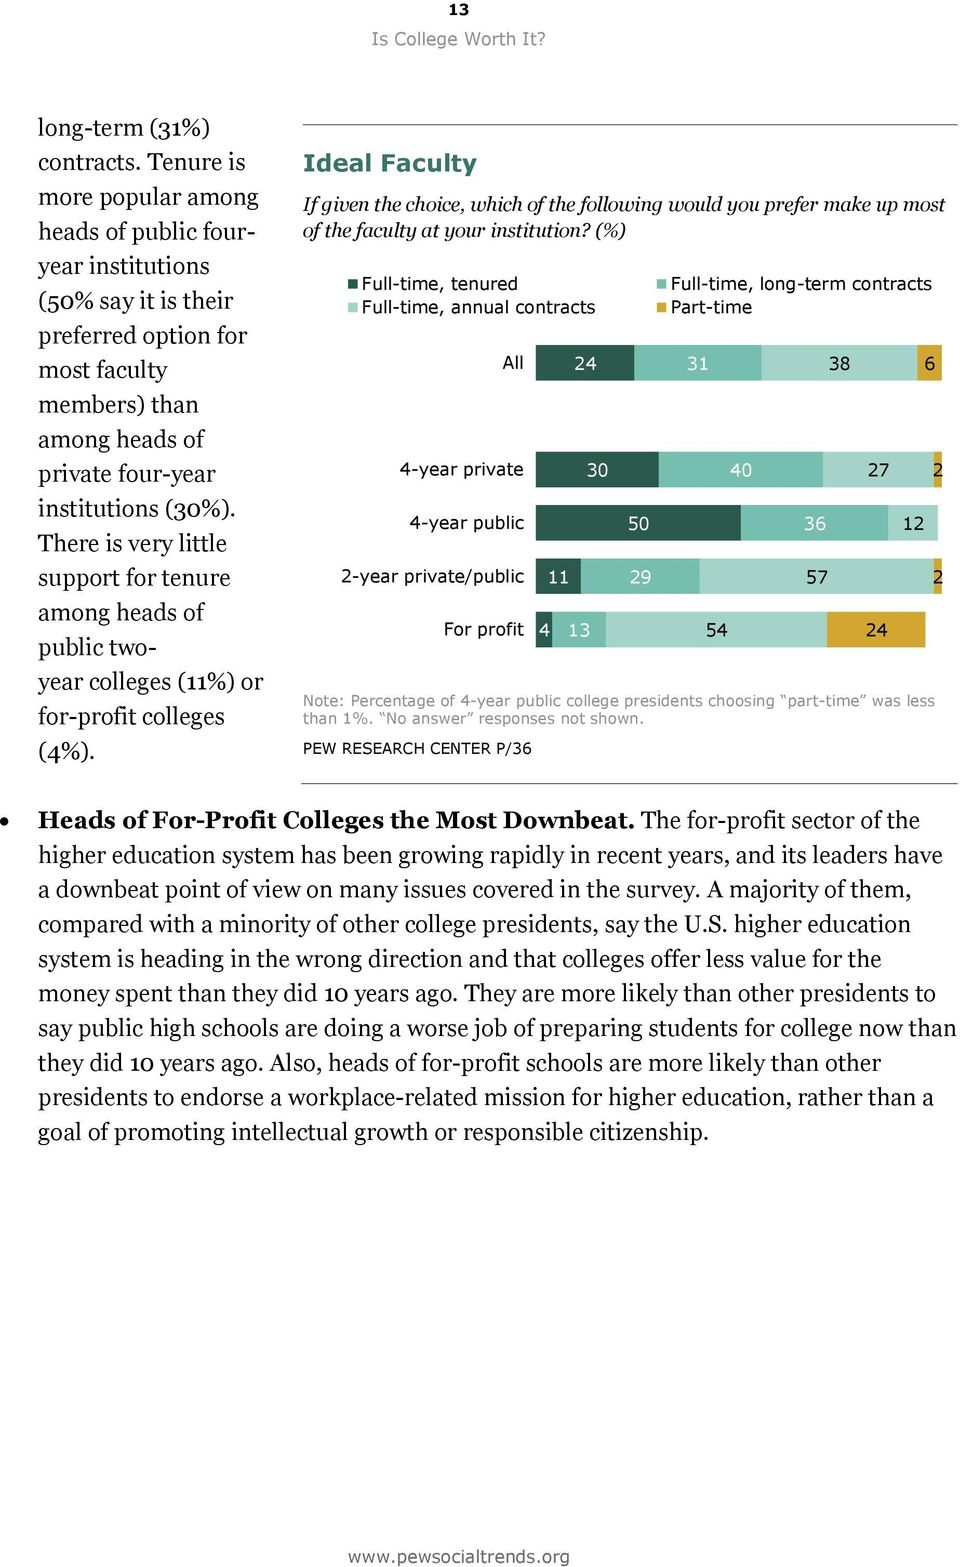 There is very little support for tenure among heads of public twoyear colleges (11%) or for-profit colleges (4%).